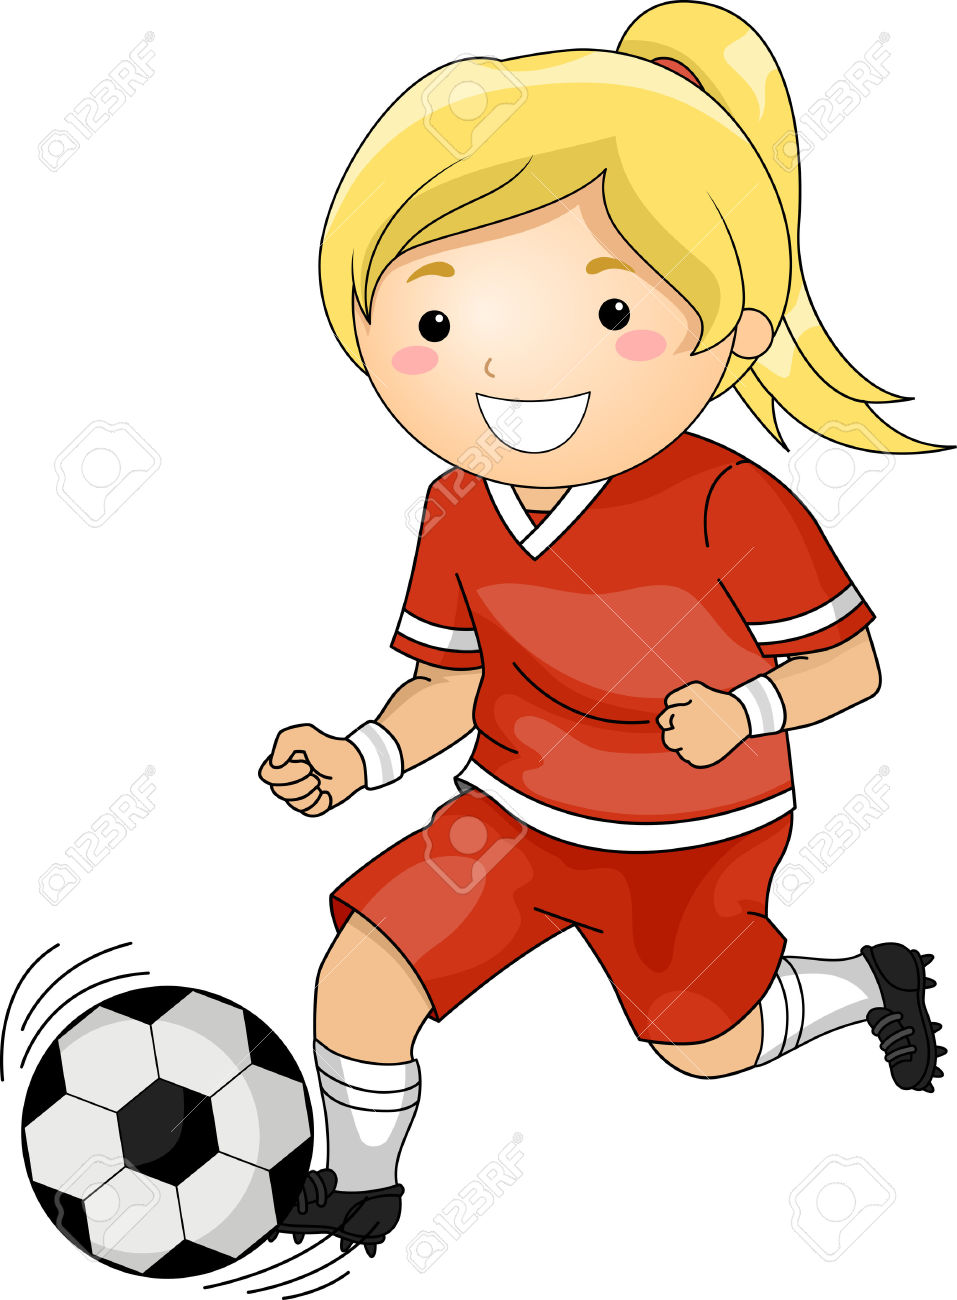 People playing soccer clipart svg free library Girl Playing Soccer Clipart   Free download best Girl ... svg free library